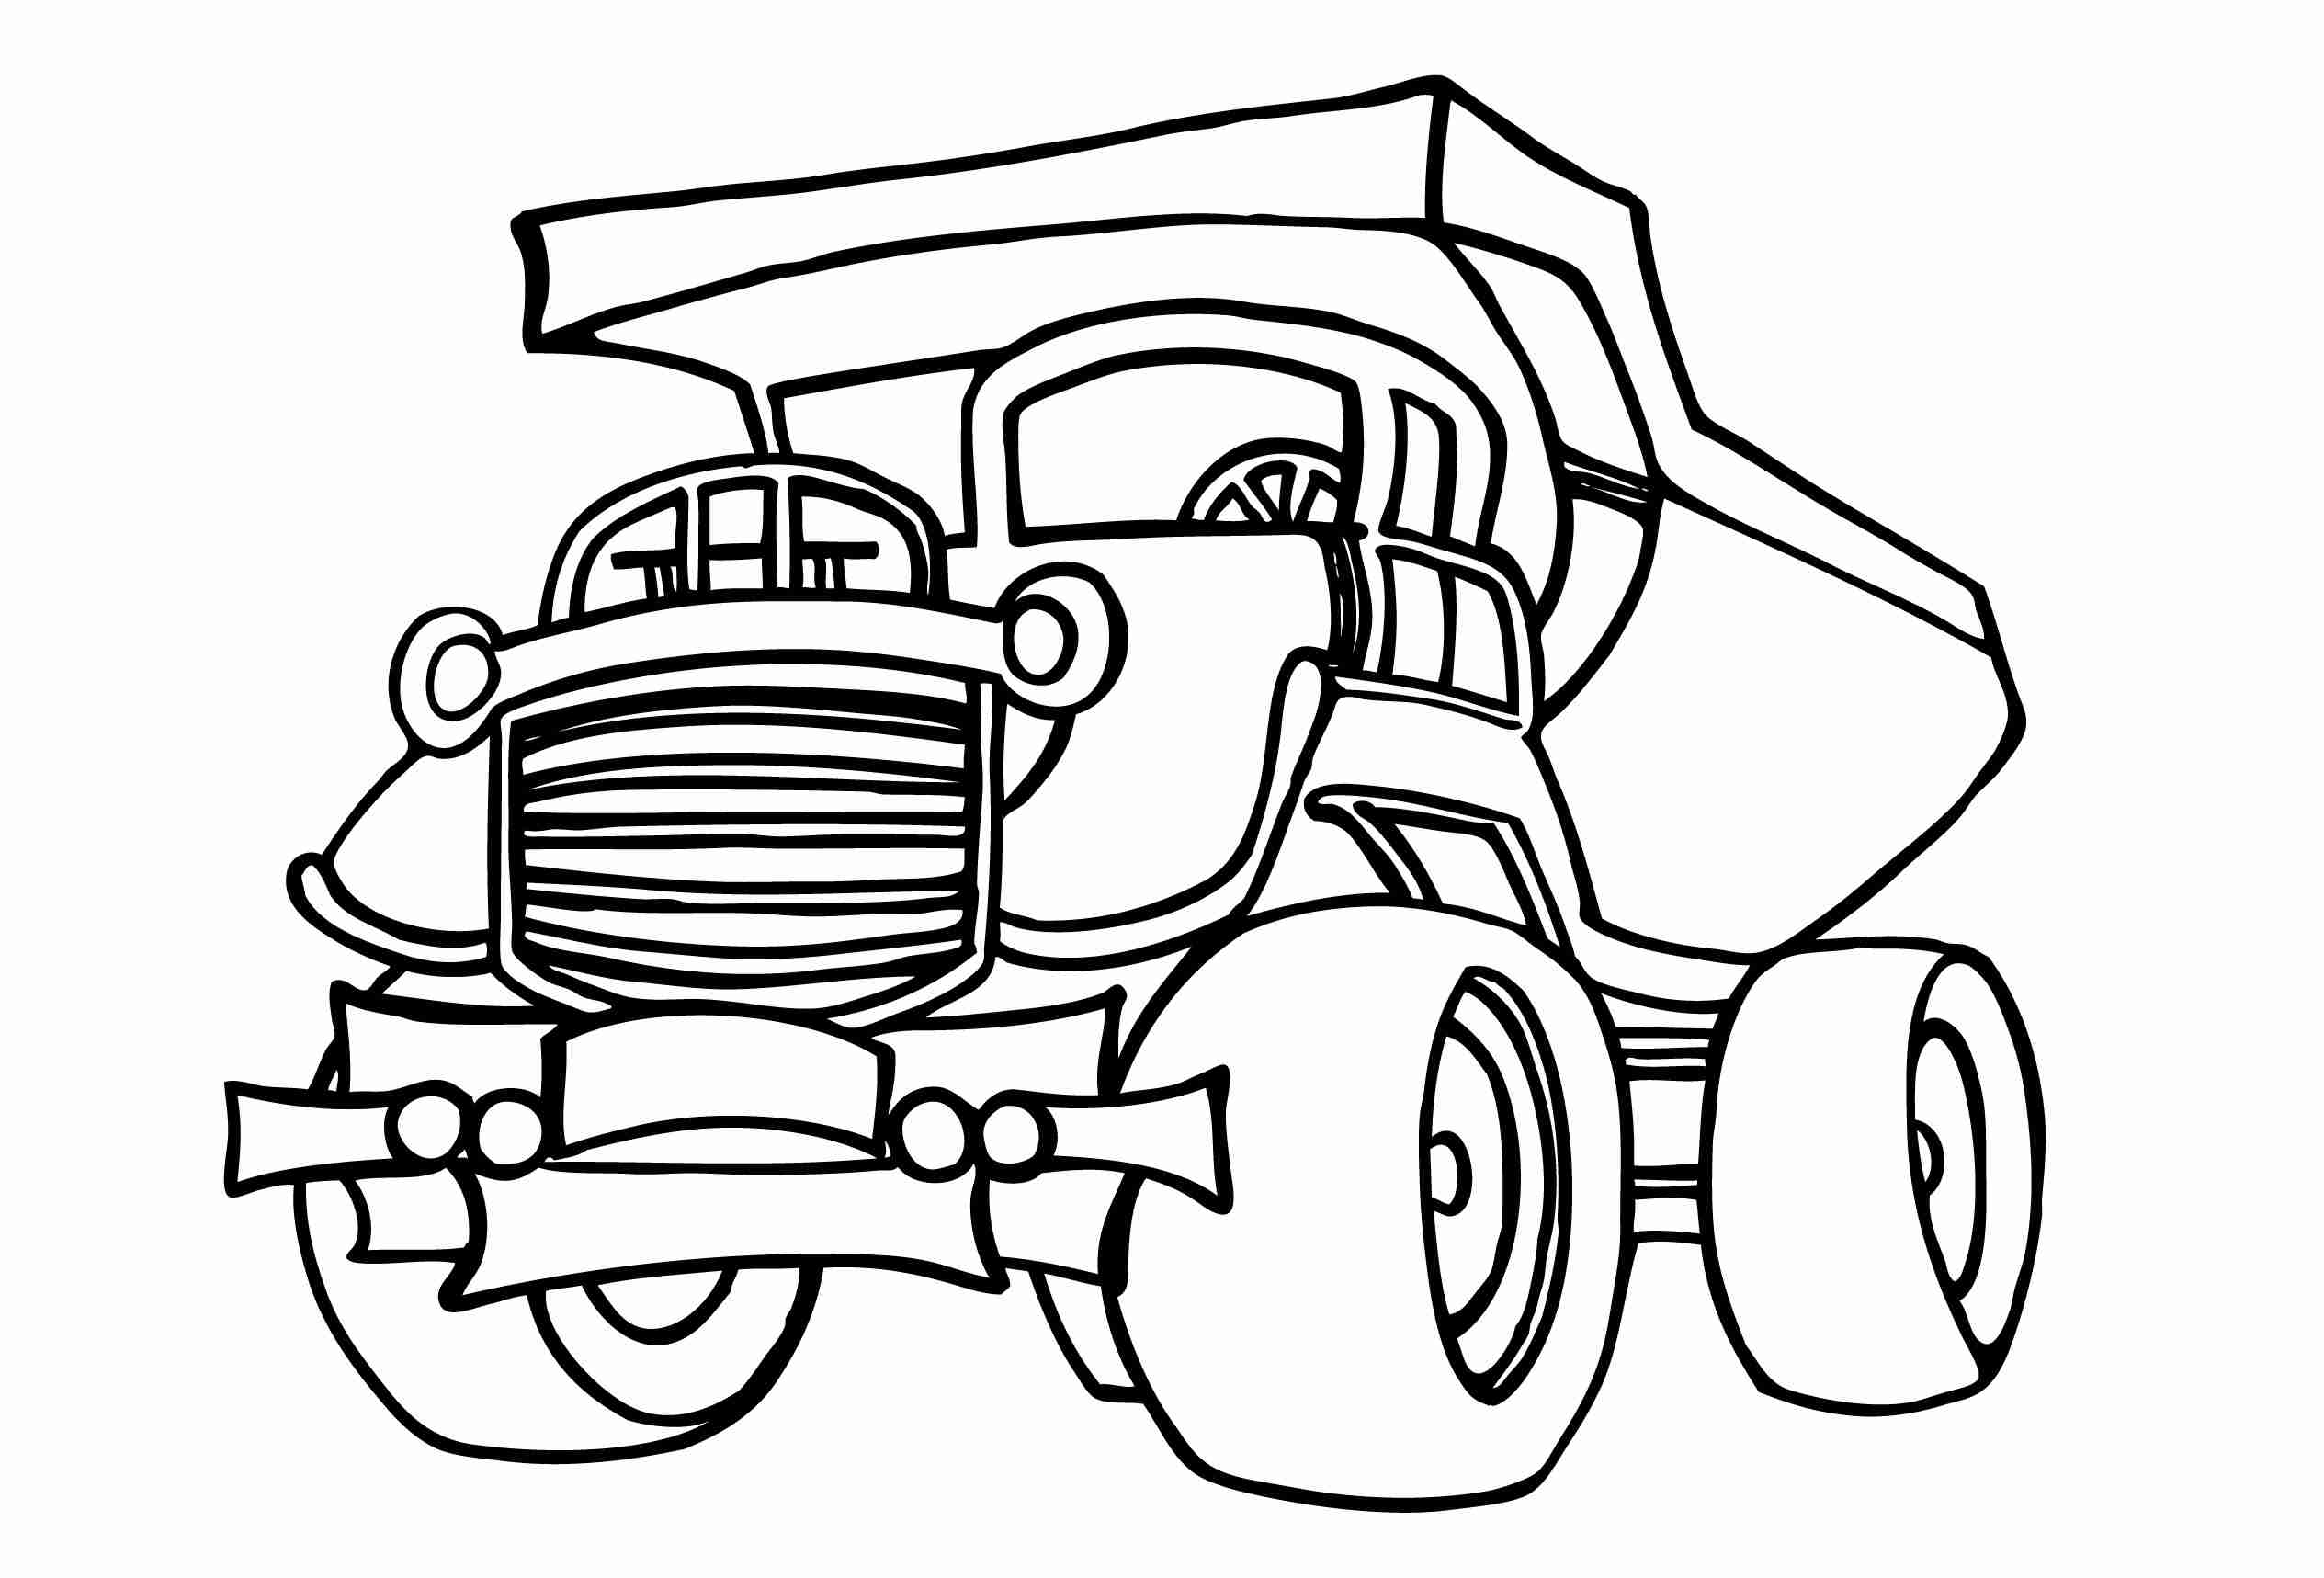 2529x1717 Coloring Construction Equipment Pages Showy Free Printables